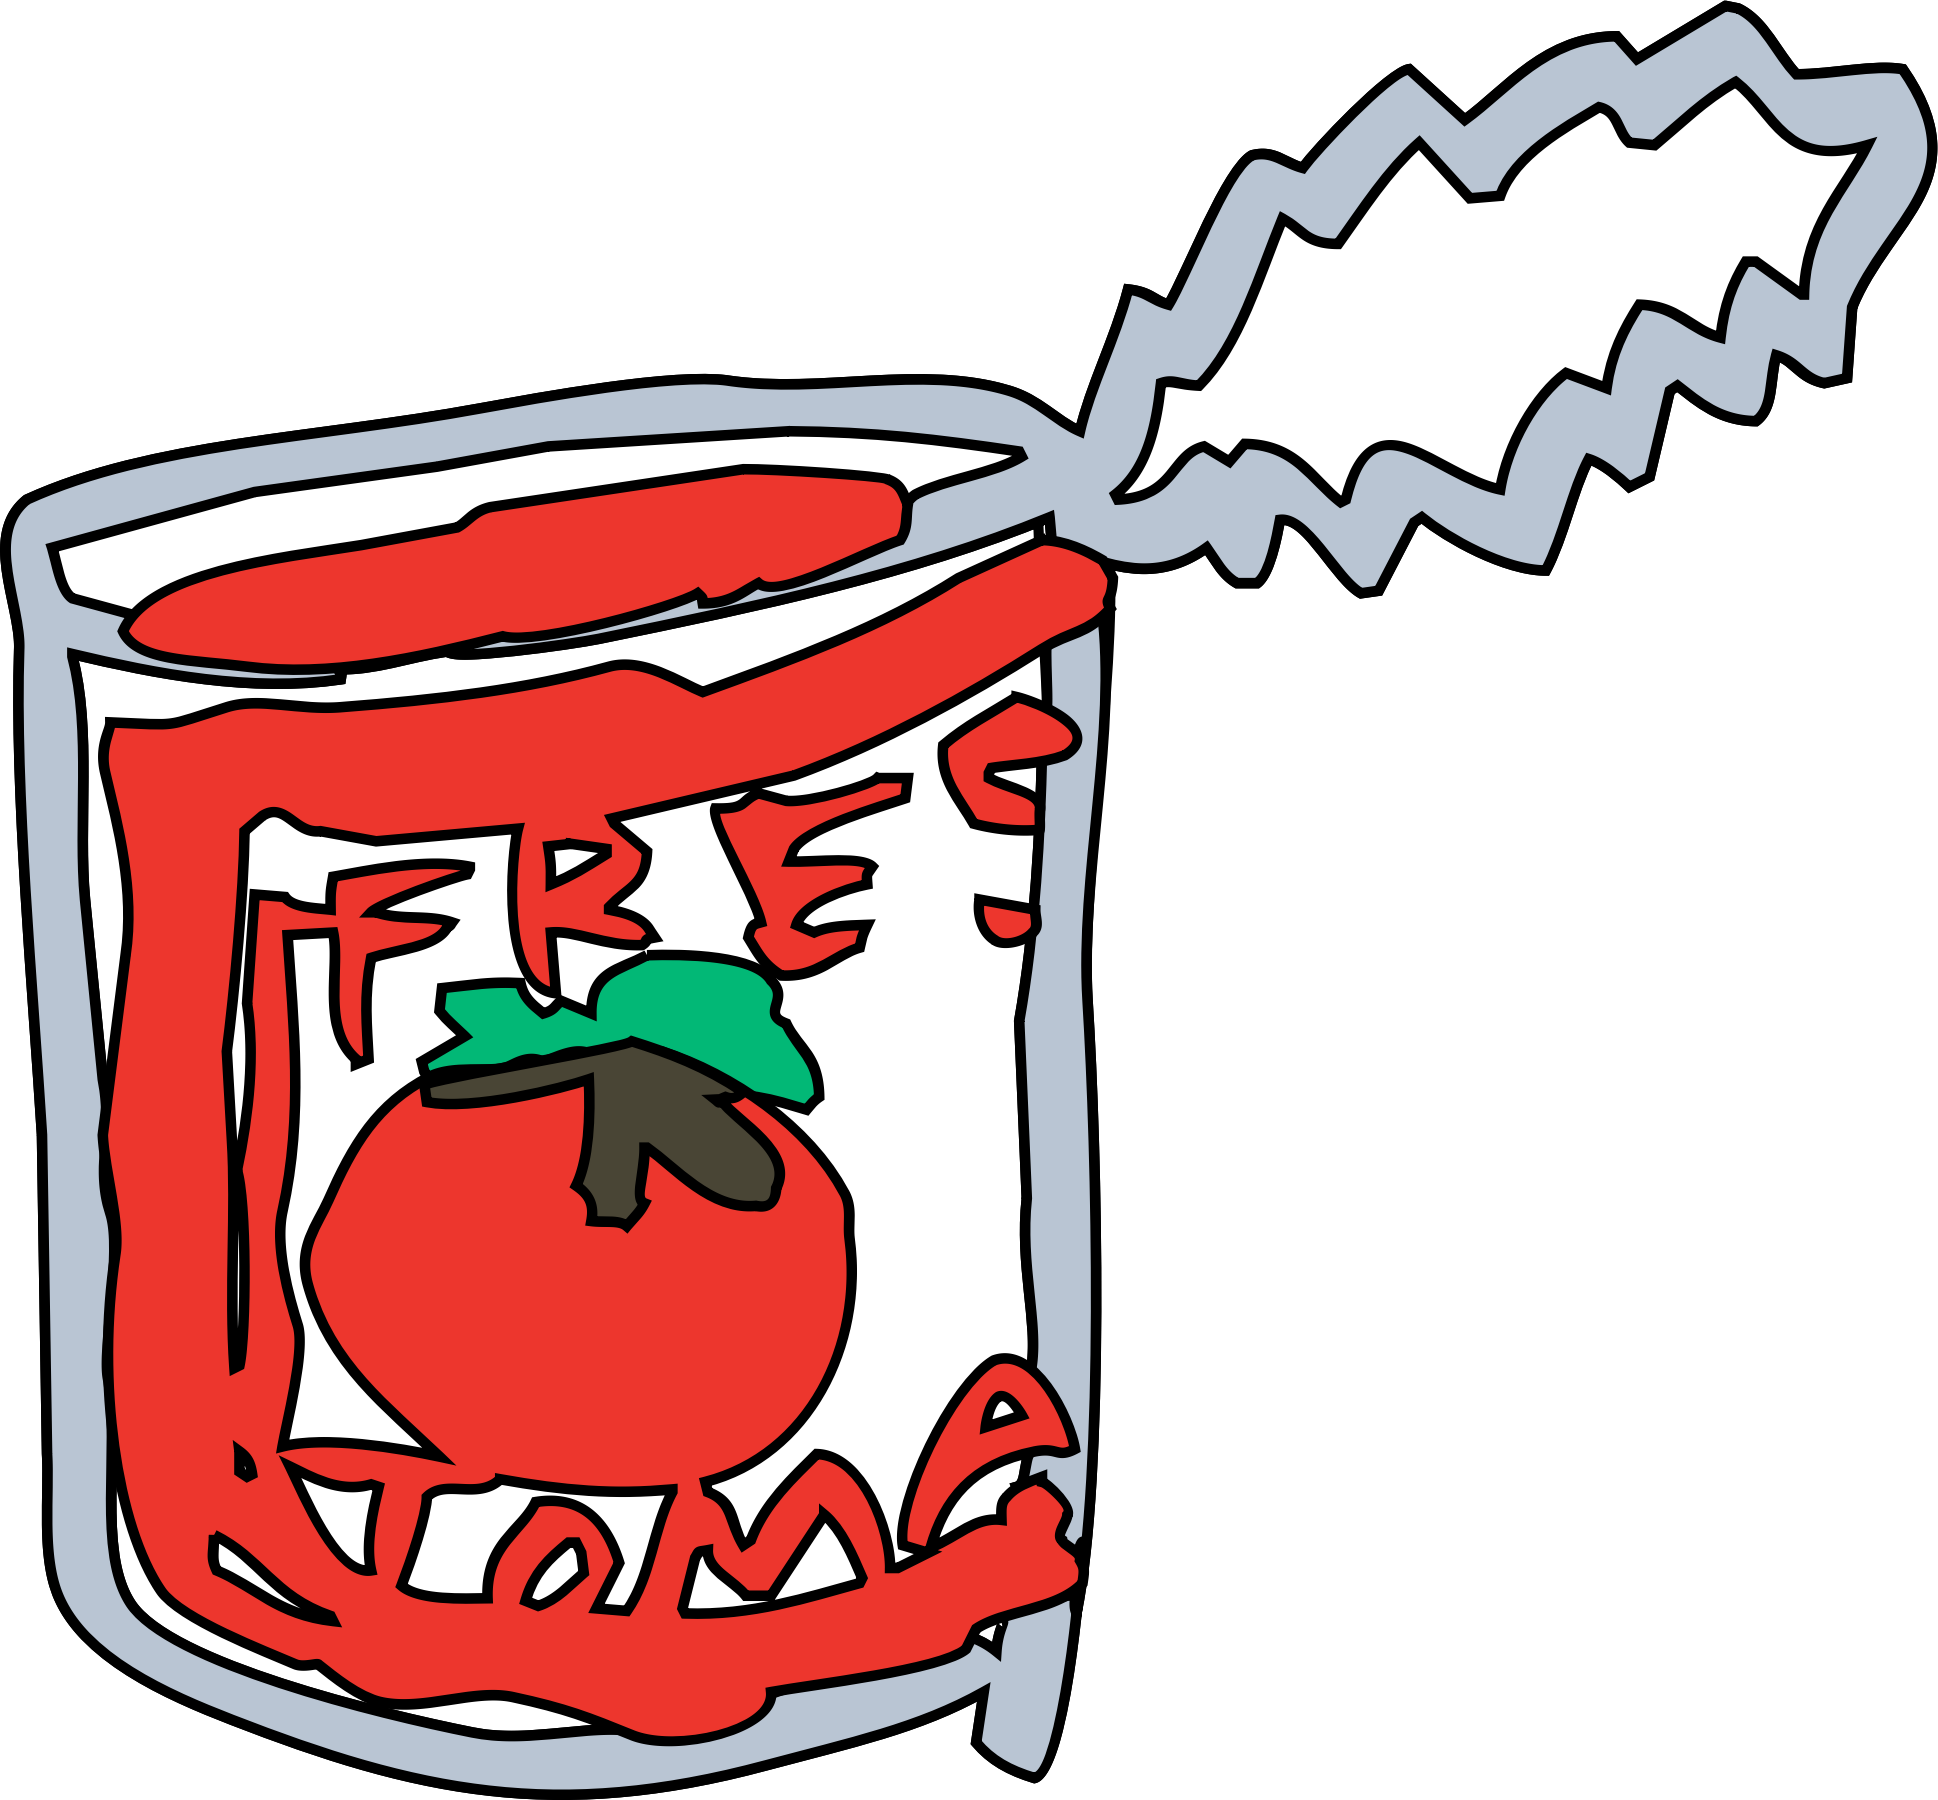 Tomato can by zeimusu